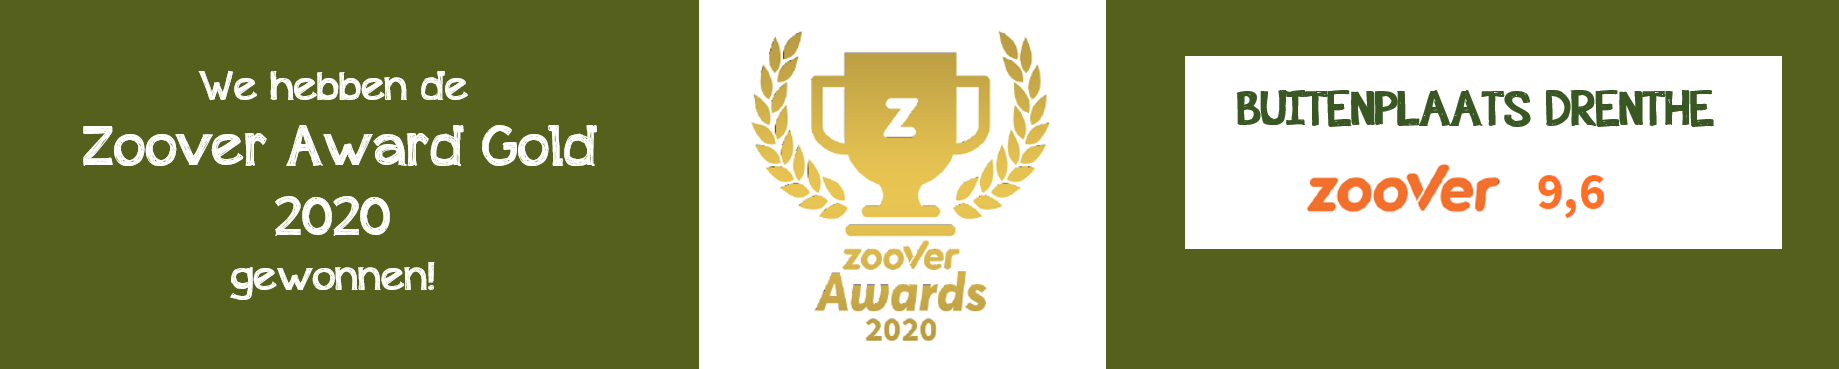 Zoover Award Gold